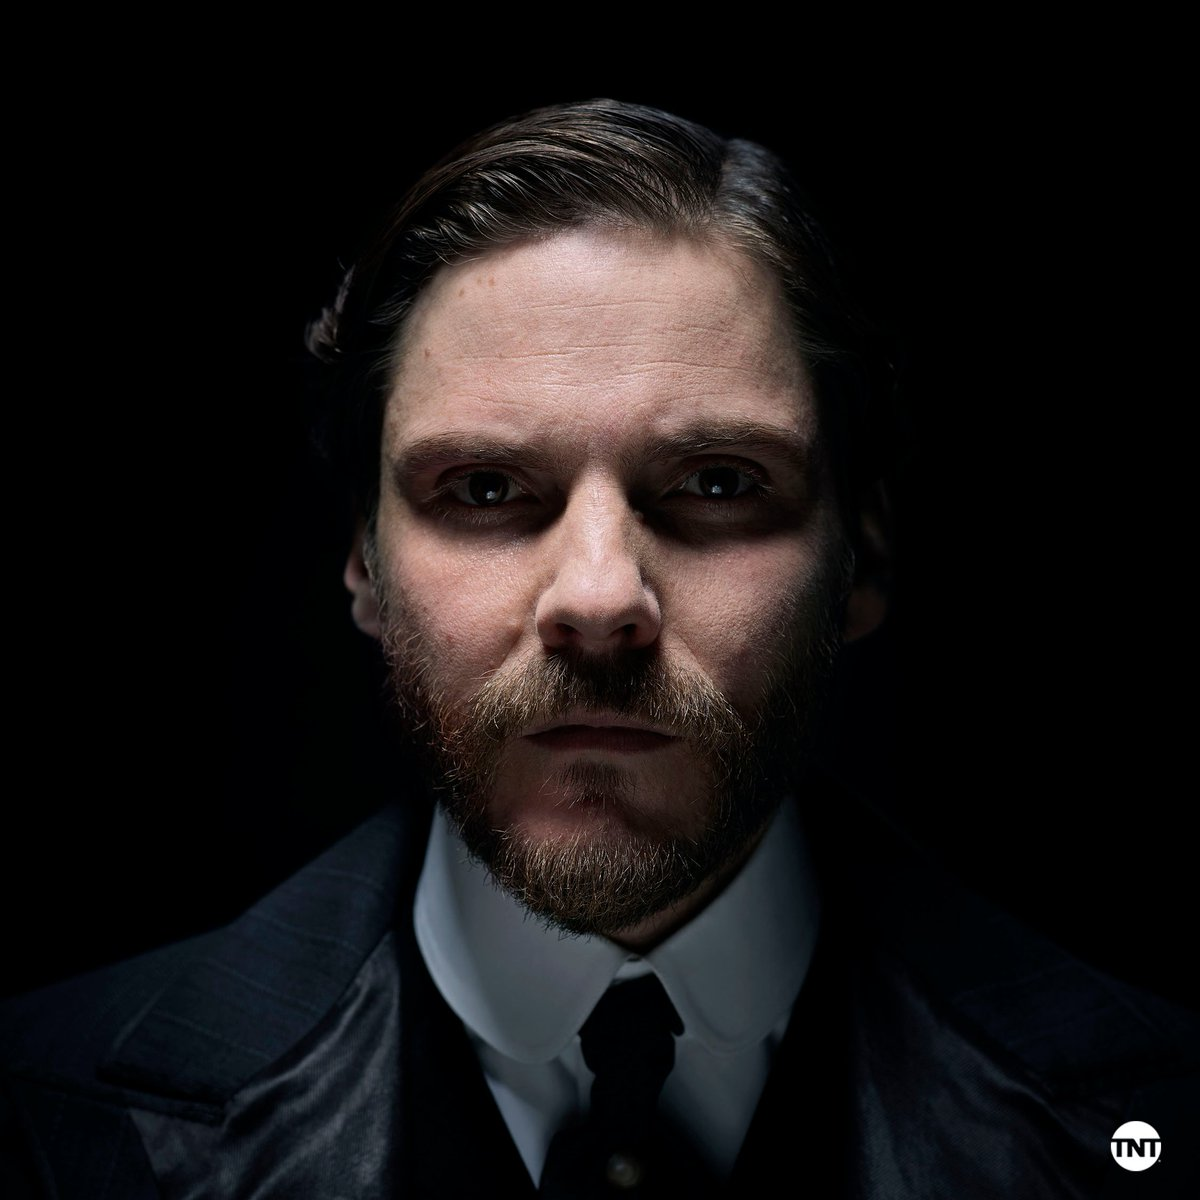 #TheAlienist Latest News Trends Updates Images - theRealukeEvan